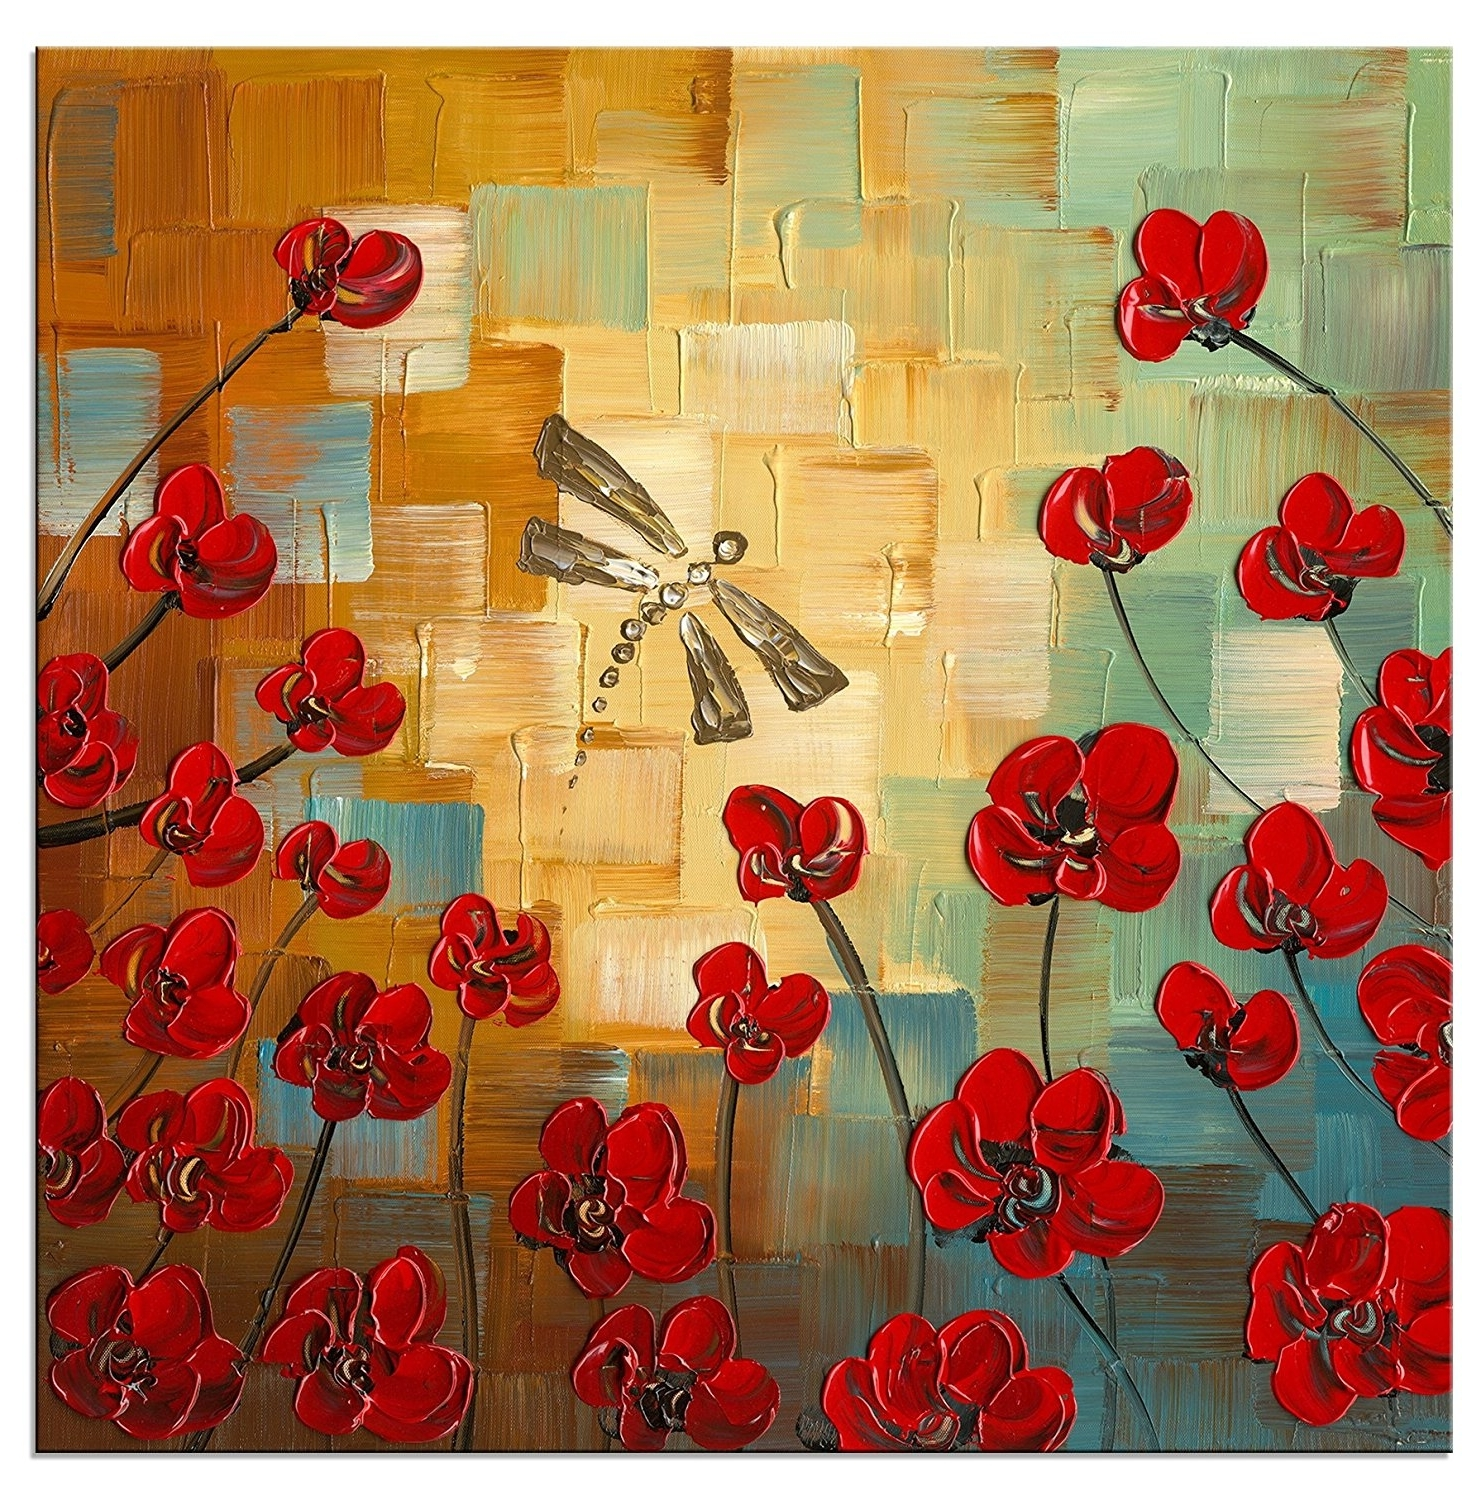 [%Amazon: Wieco Art – Dragonfly Modern Flowers Artwork 100% Hand Within Trendy Abstract Floral Canvas Wall Art|Abstract Floral Canvas Wall Art In Most Current Amazon: Wieco Art – Dragonfly Modern Flowers Artwork 100% Hand|Well Known Abstract Floral Canvas Wall Art With Amazon: Wieco Art – Dragonfly Modern Flowers Artwork 100% Hand|Fashionable Amazon: Wieco Art – Dragonfly Modern Flowers Artwork 100% Hand Within Abstract Floral Canvas Wall Art%] (View 1 of 15)